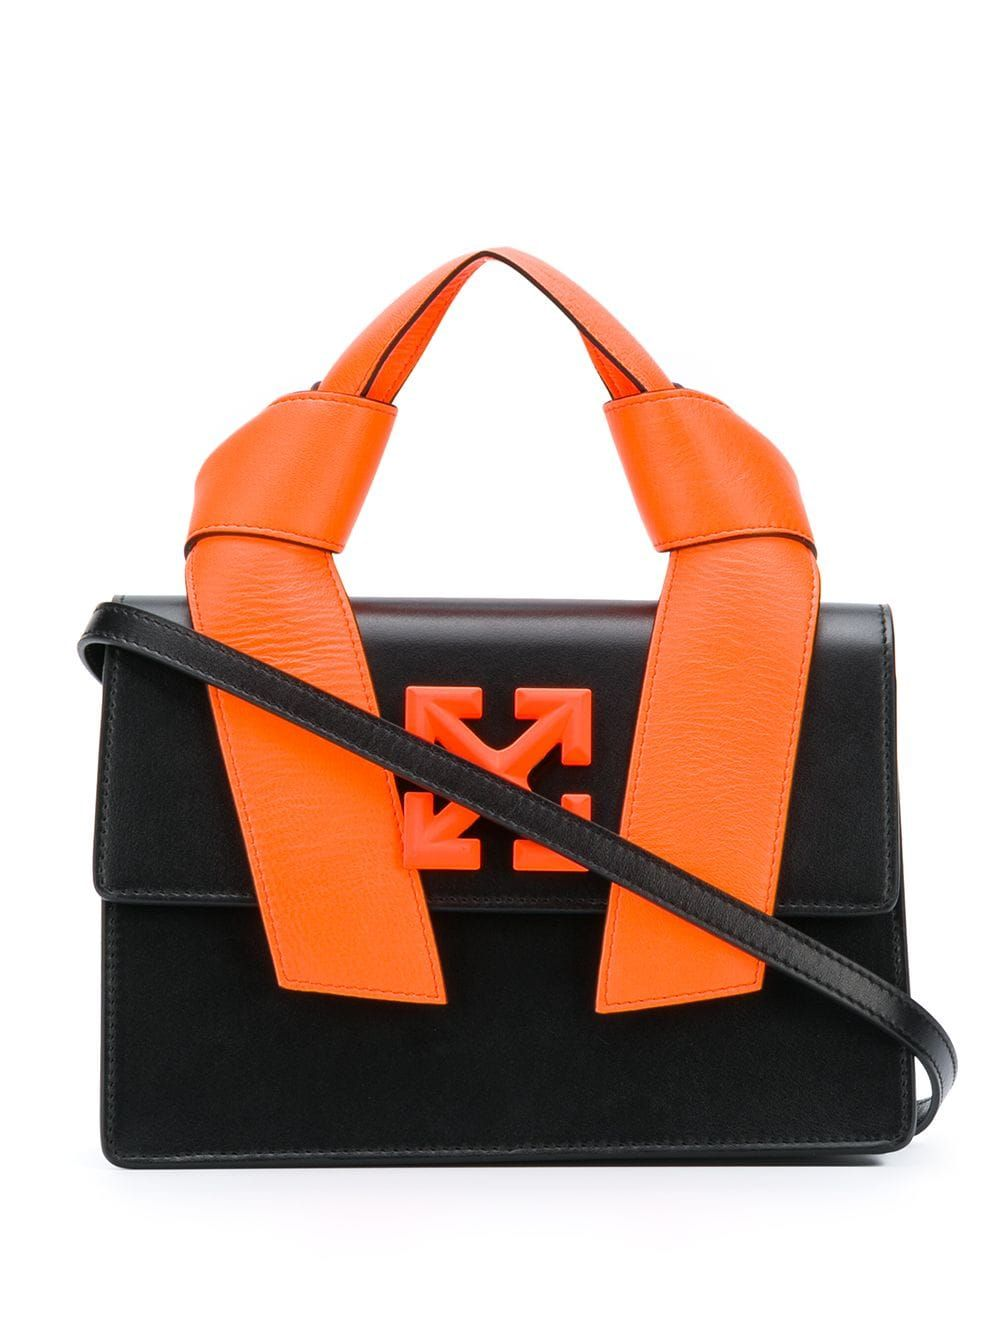 OFF-WHITE NEW JITNEY 1.4 handbag